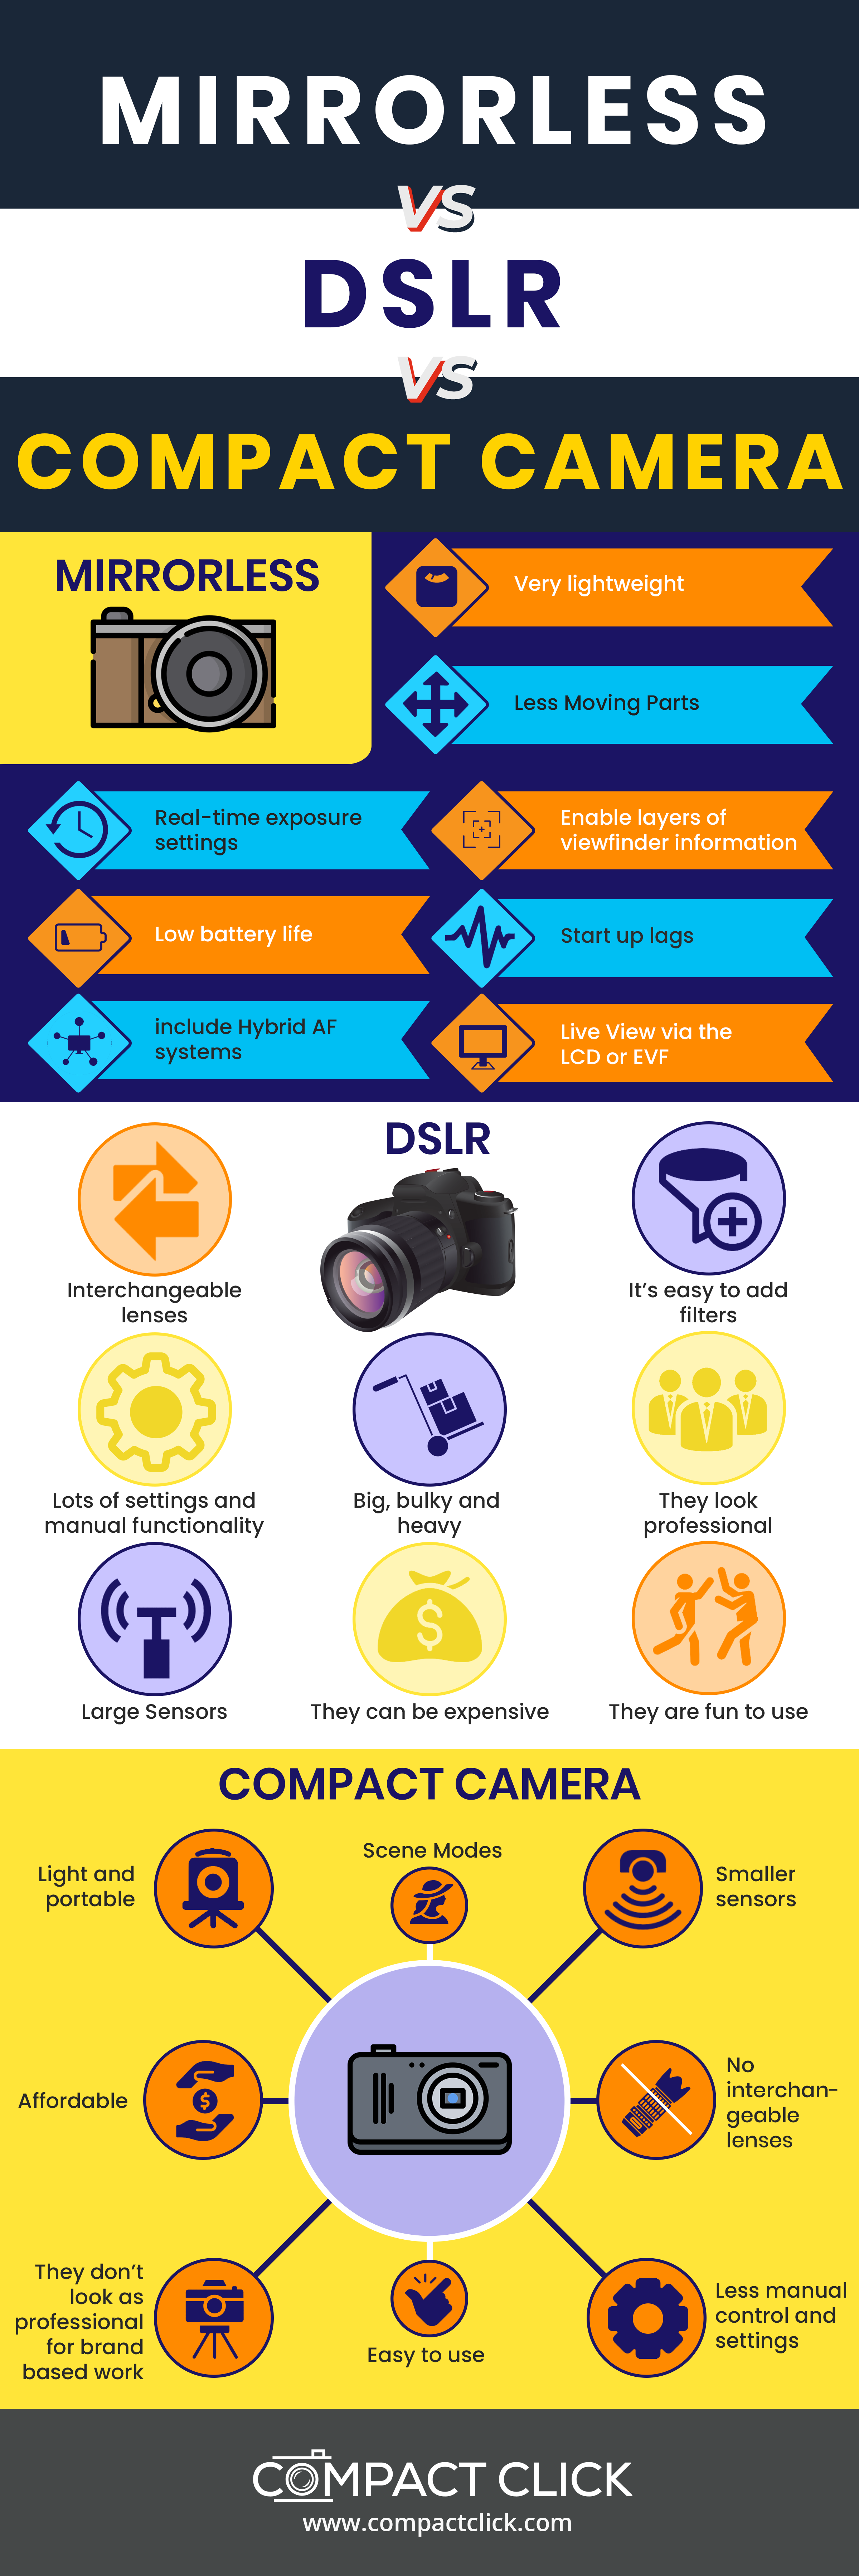 Mirrorless vs DSLR vs Compact Camera